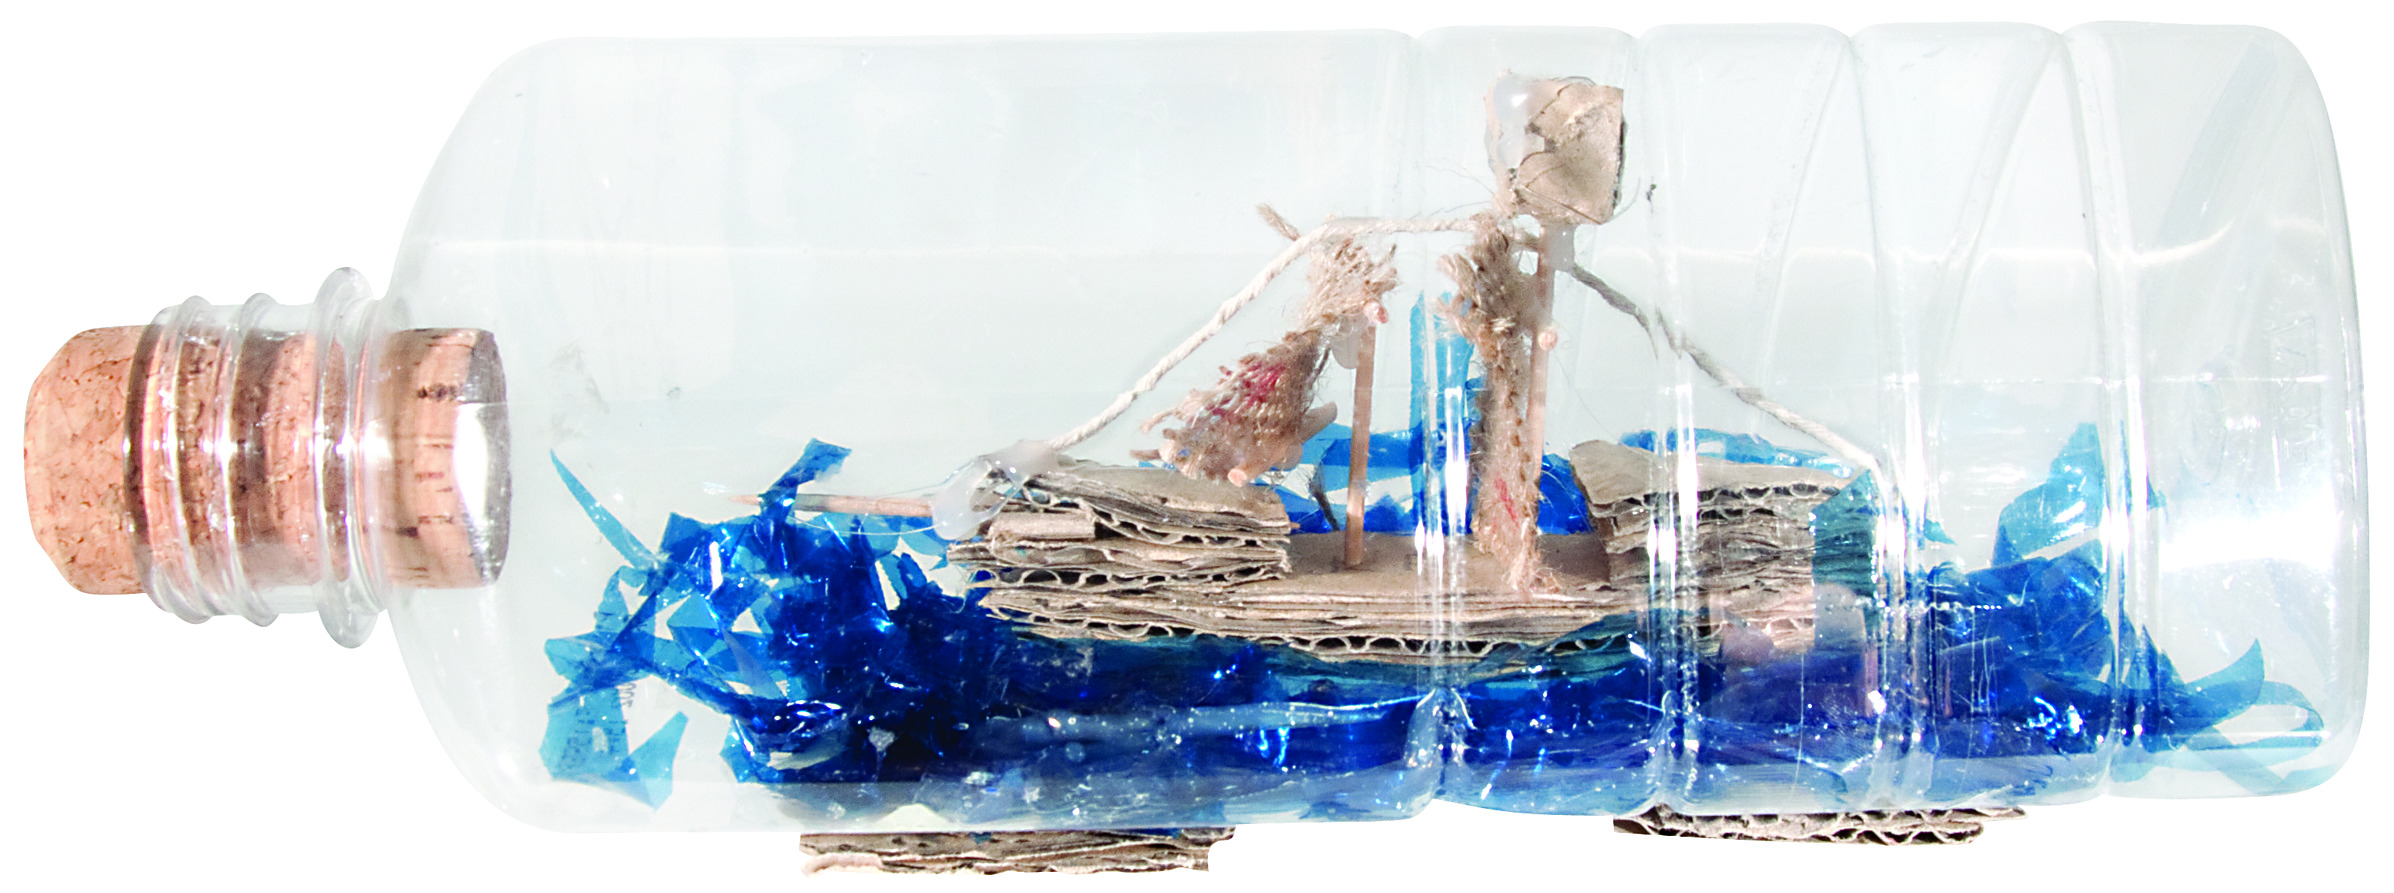 Boats In Bottles 4